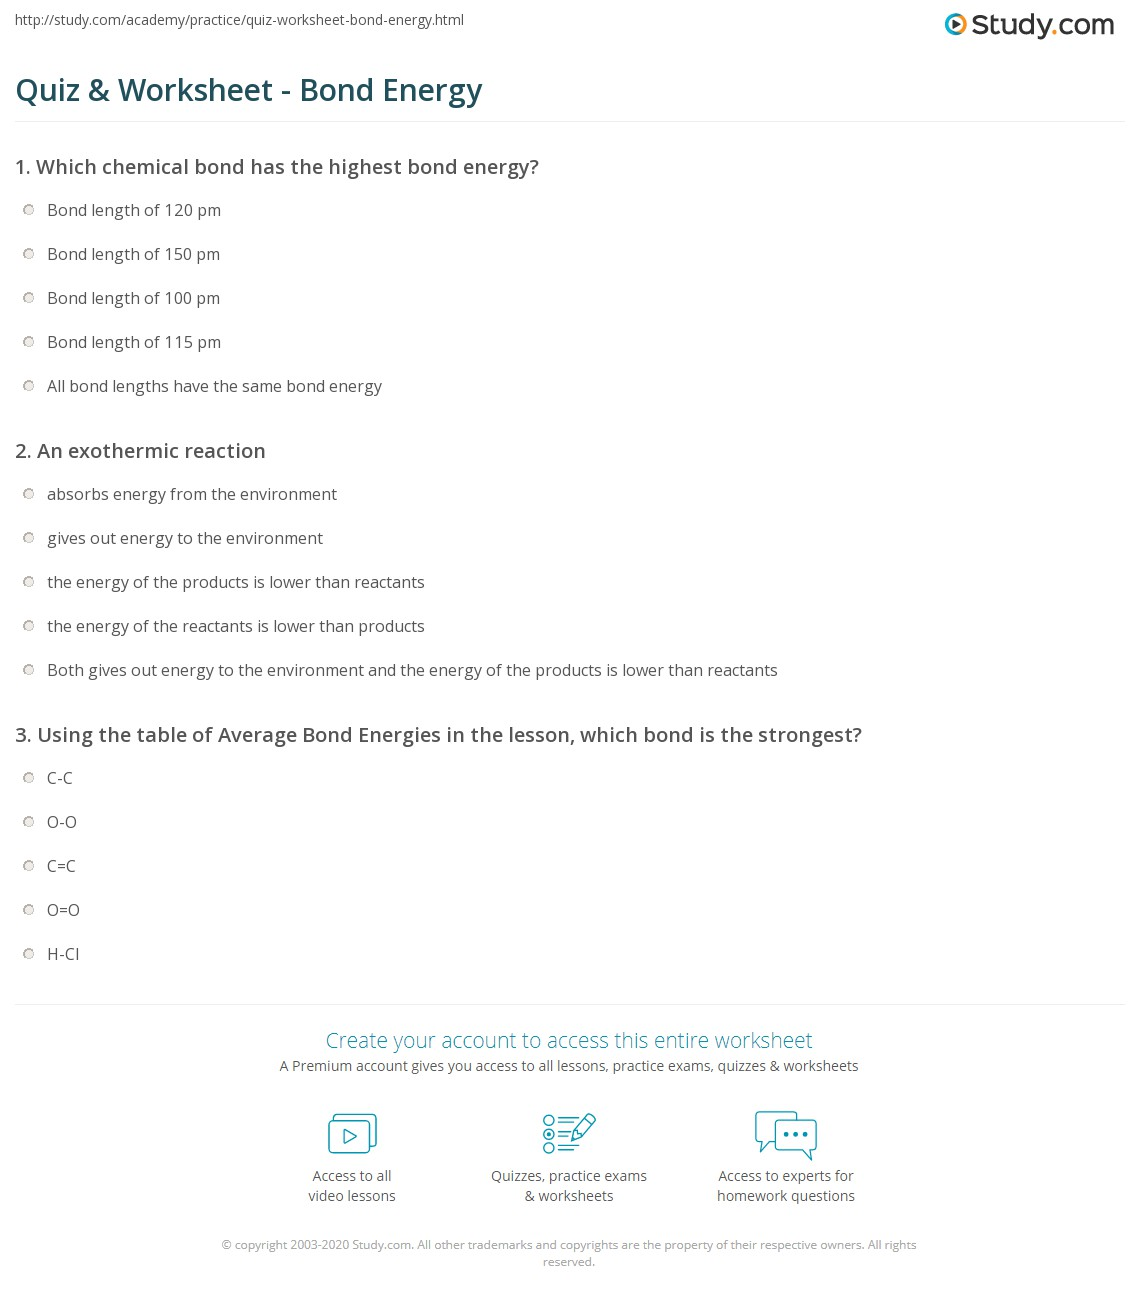 Quiz & Worksheet - Bond Energy | Study.com